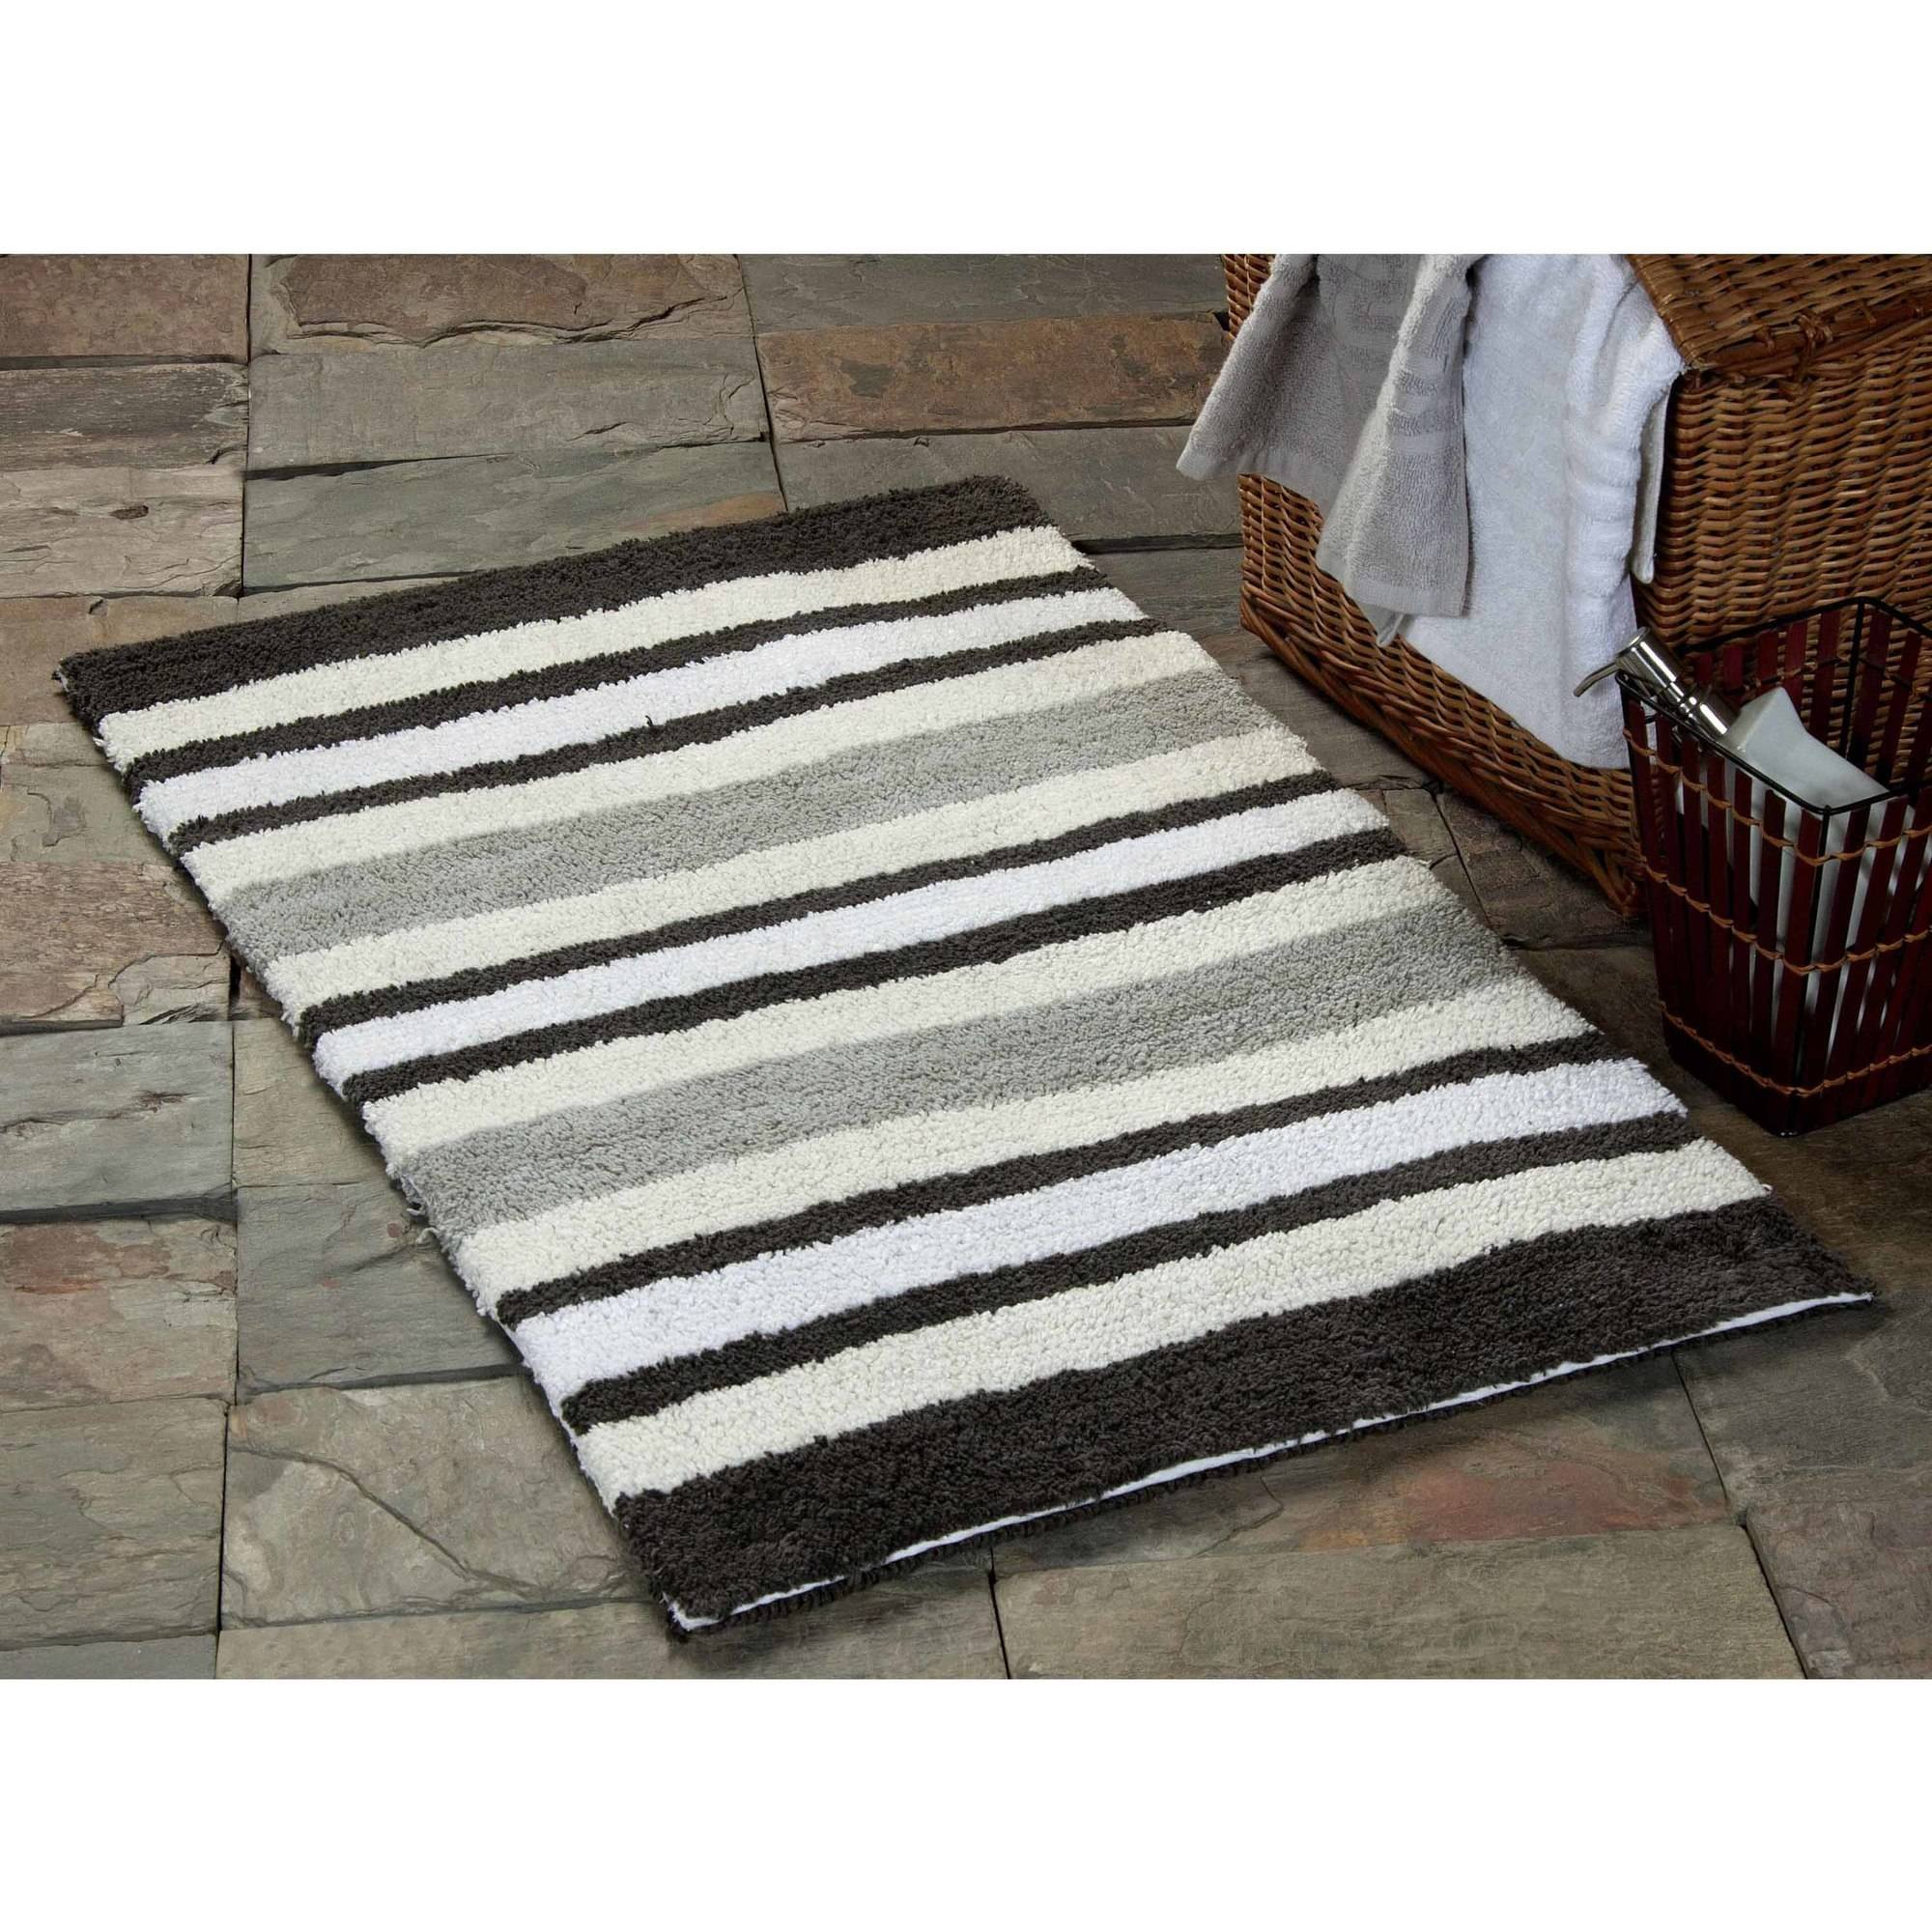 Saffron Fabs Bath Rug 2-Piece Set, Reversible Textured Multiple Color Stripes Pattern, Assorted Colors and Sizes